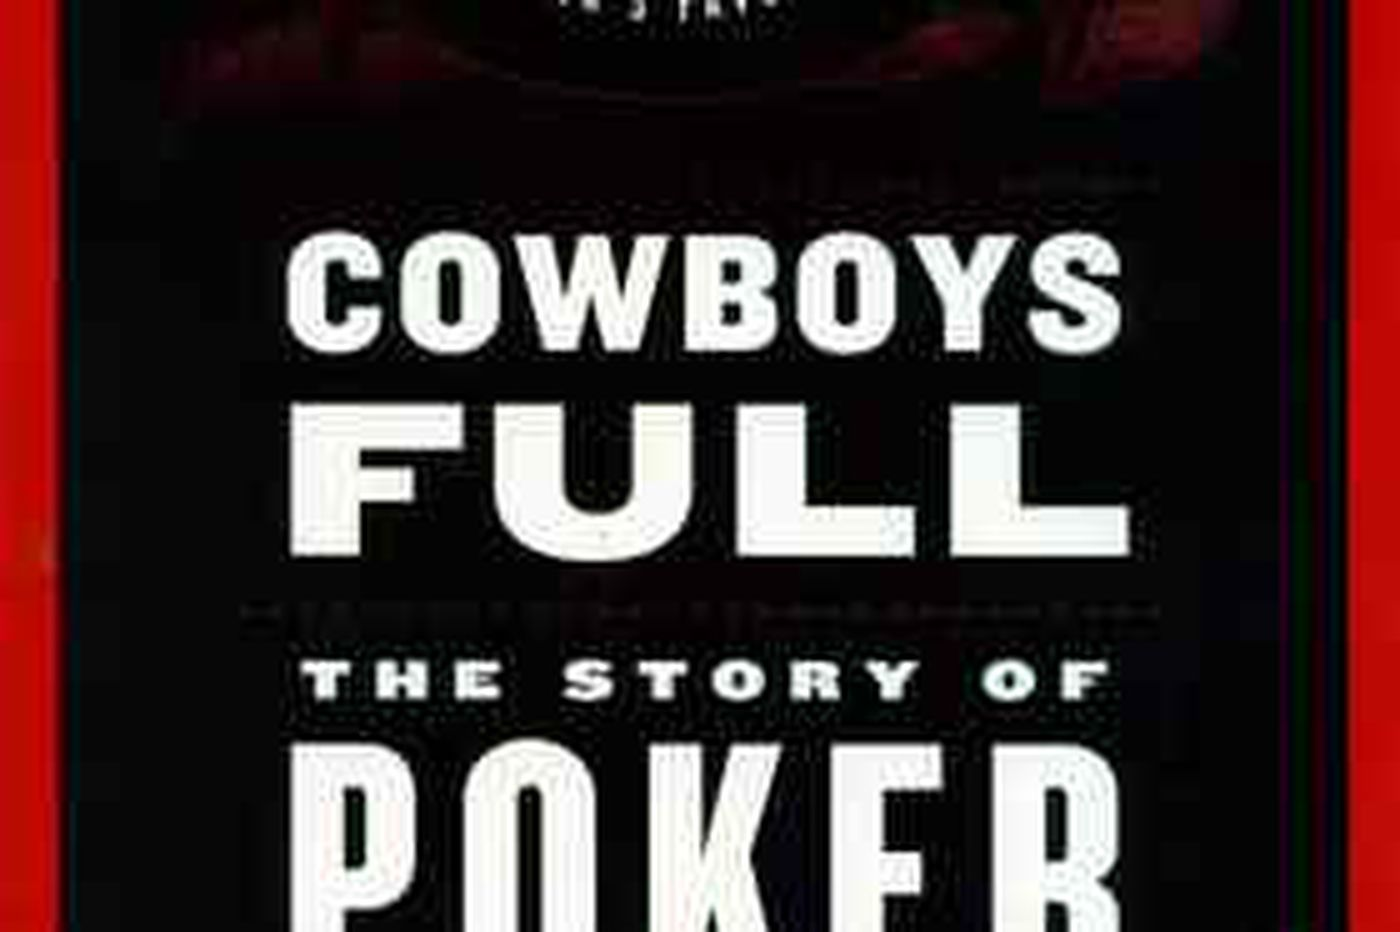 In story of poker and its players, writer has a winning hand